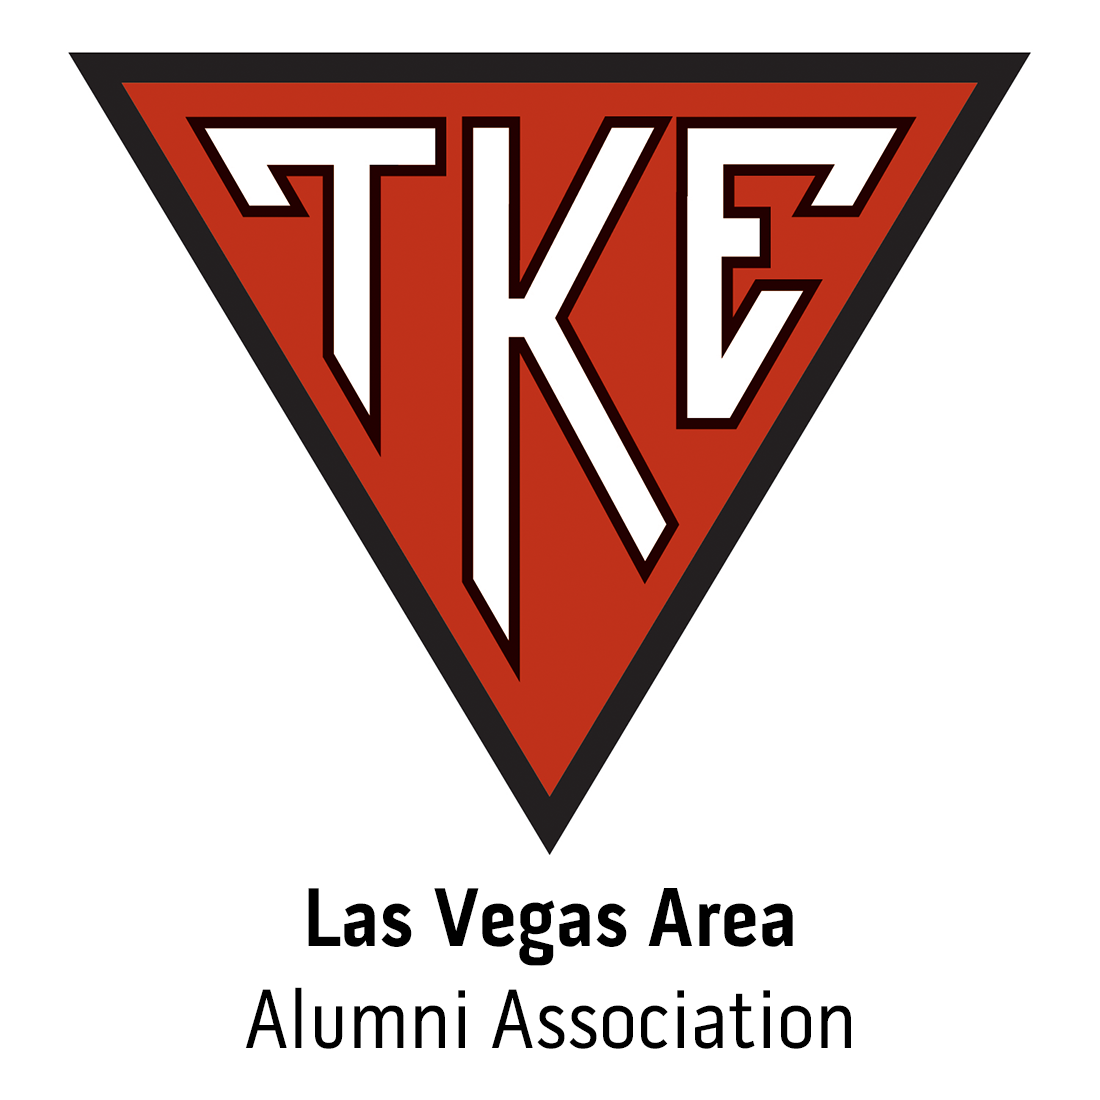 Las Vegas Area TKE Alumni Association at Las Vegas Nevada